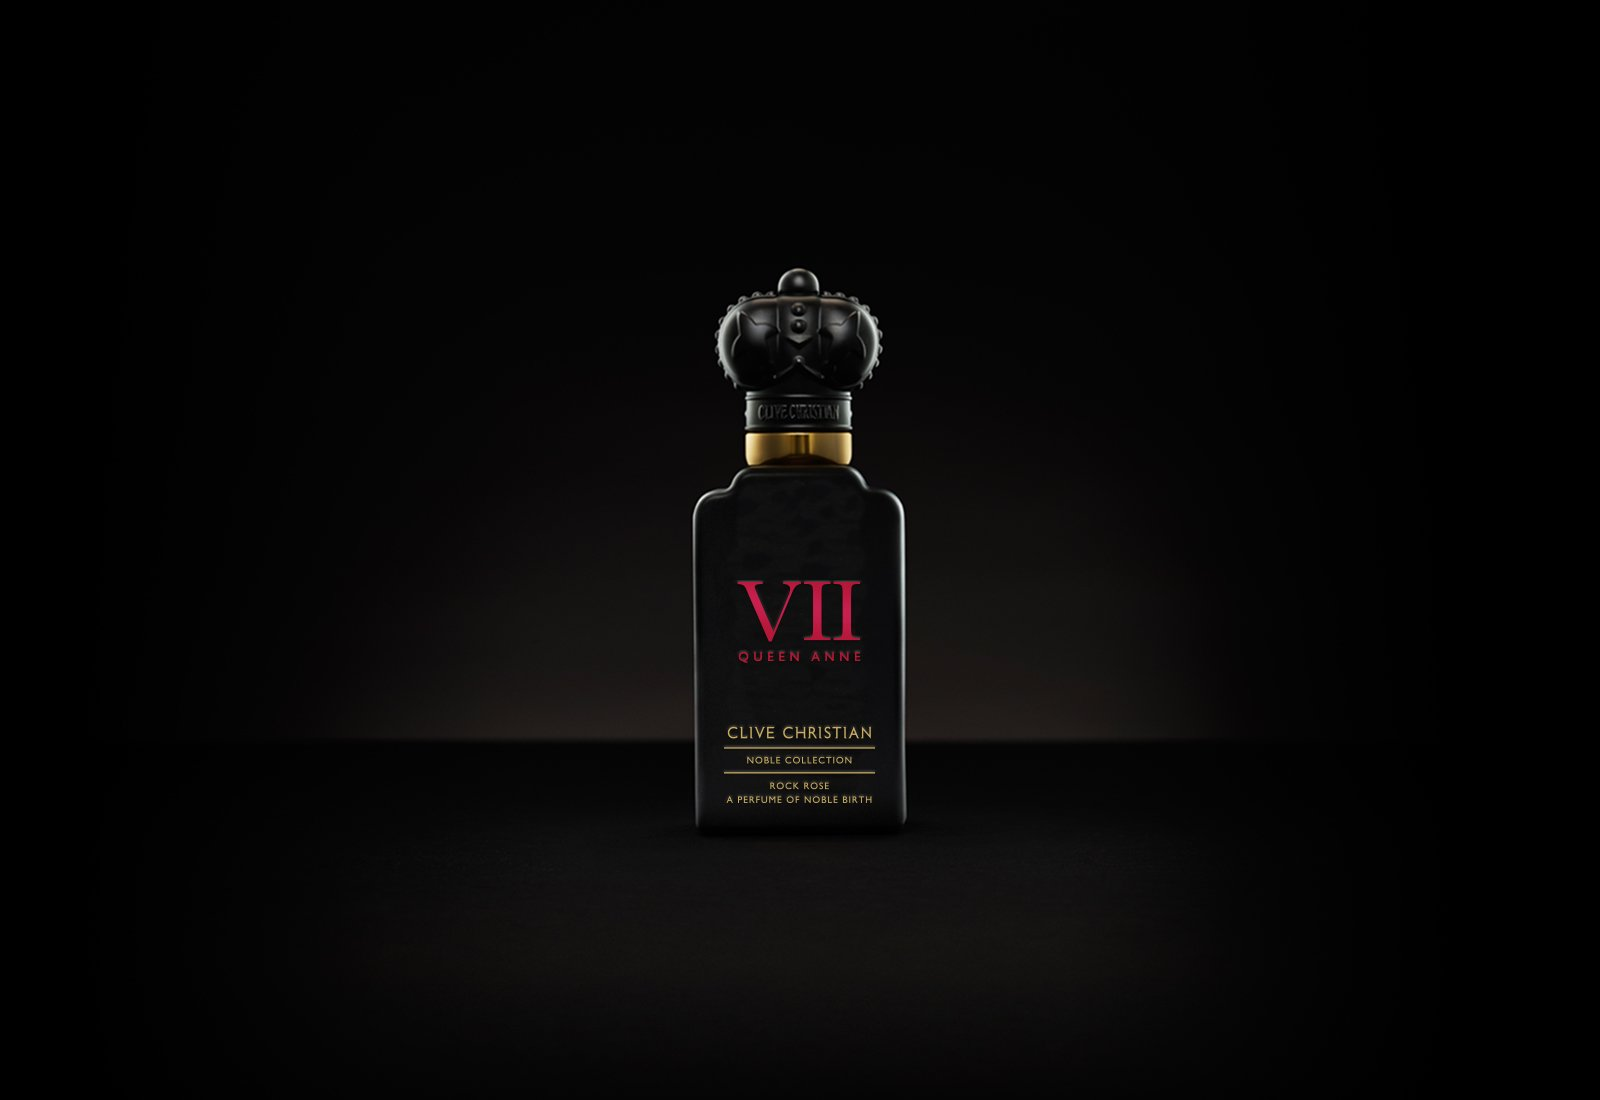 Clive Christian's luxury perfume called VII Rock comes in a black bottle with a black crown lid